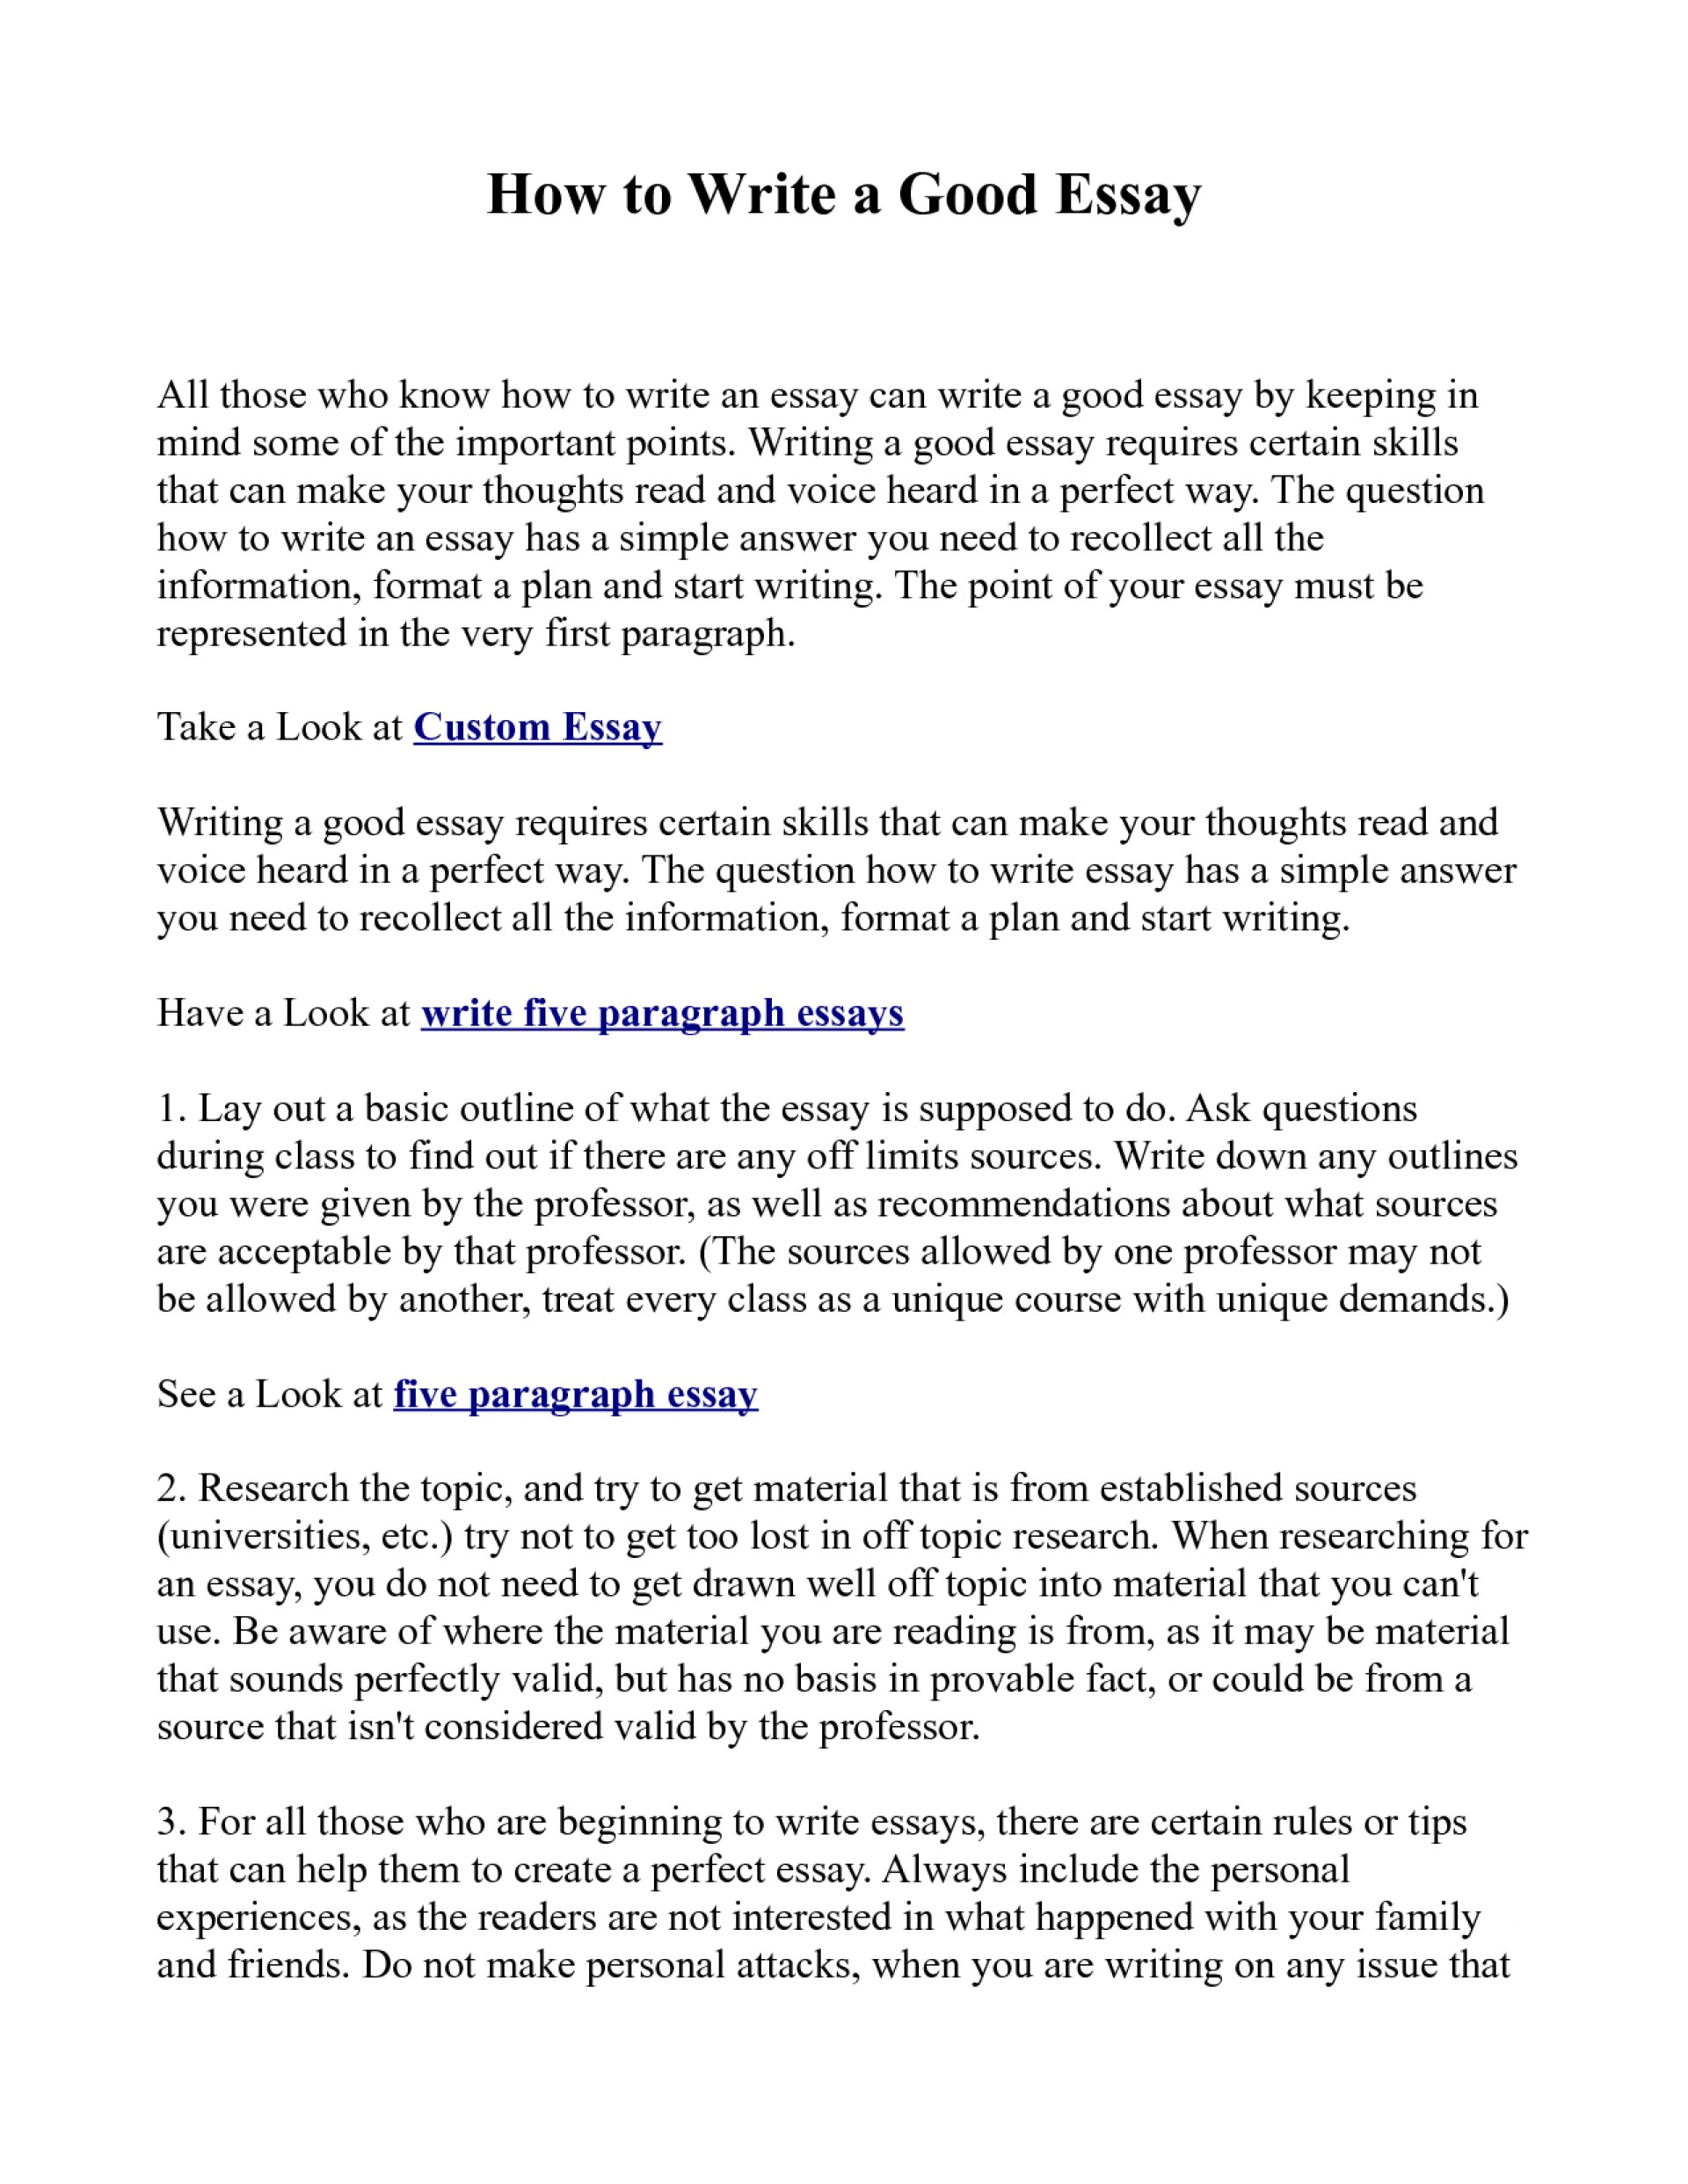 005 Essay Example Ex1id5s6cl How To Amazing Write About Yourself An For A Job Interview Titles In Paper 1920